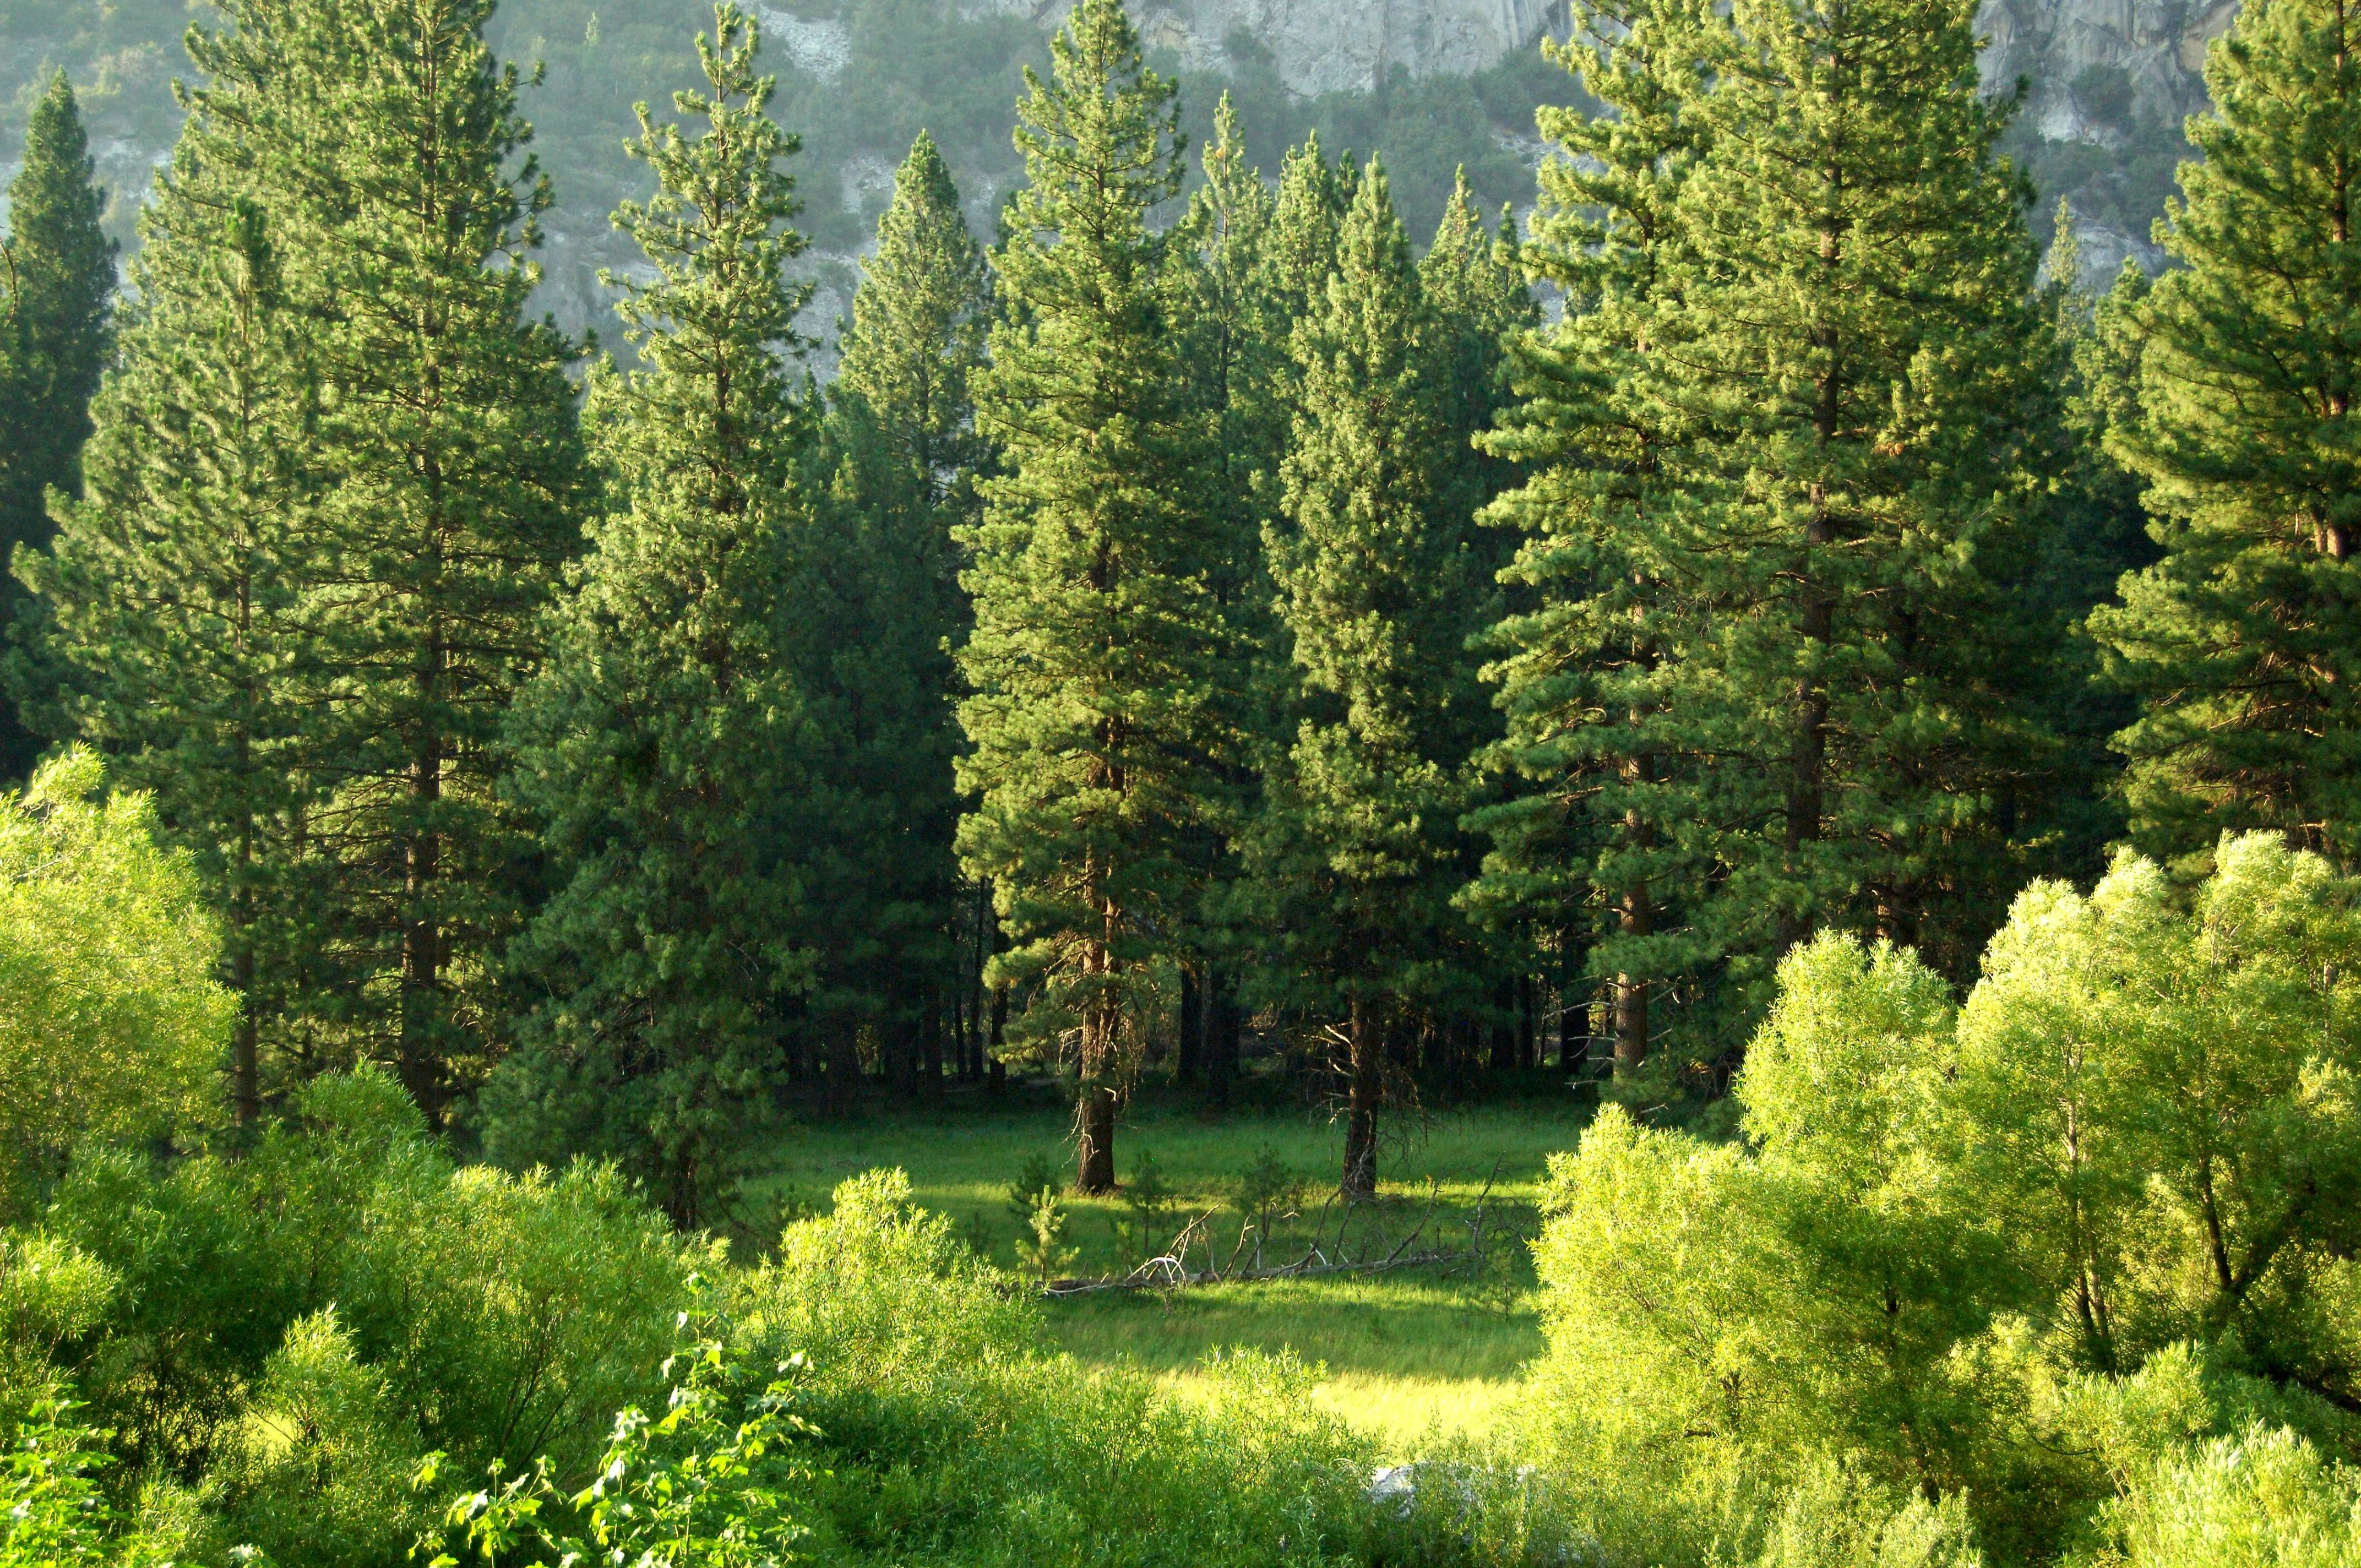 Image of trees in a forest, one of the world's natural carbon sinks.